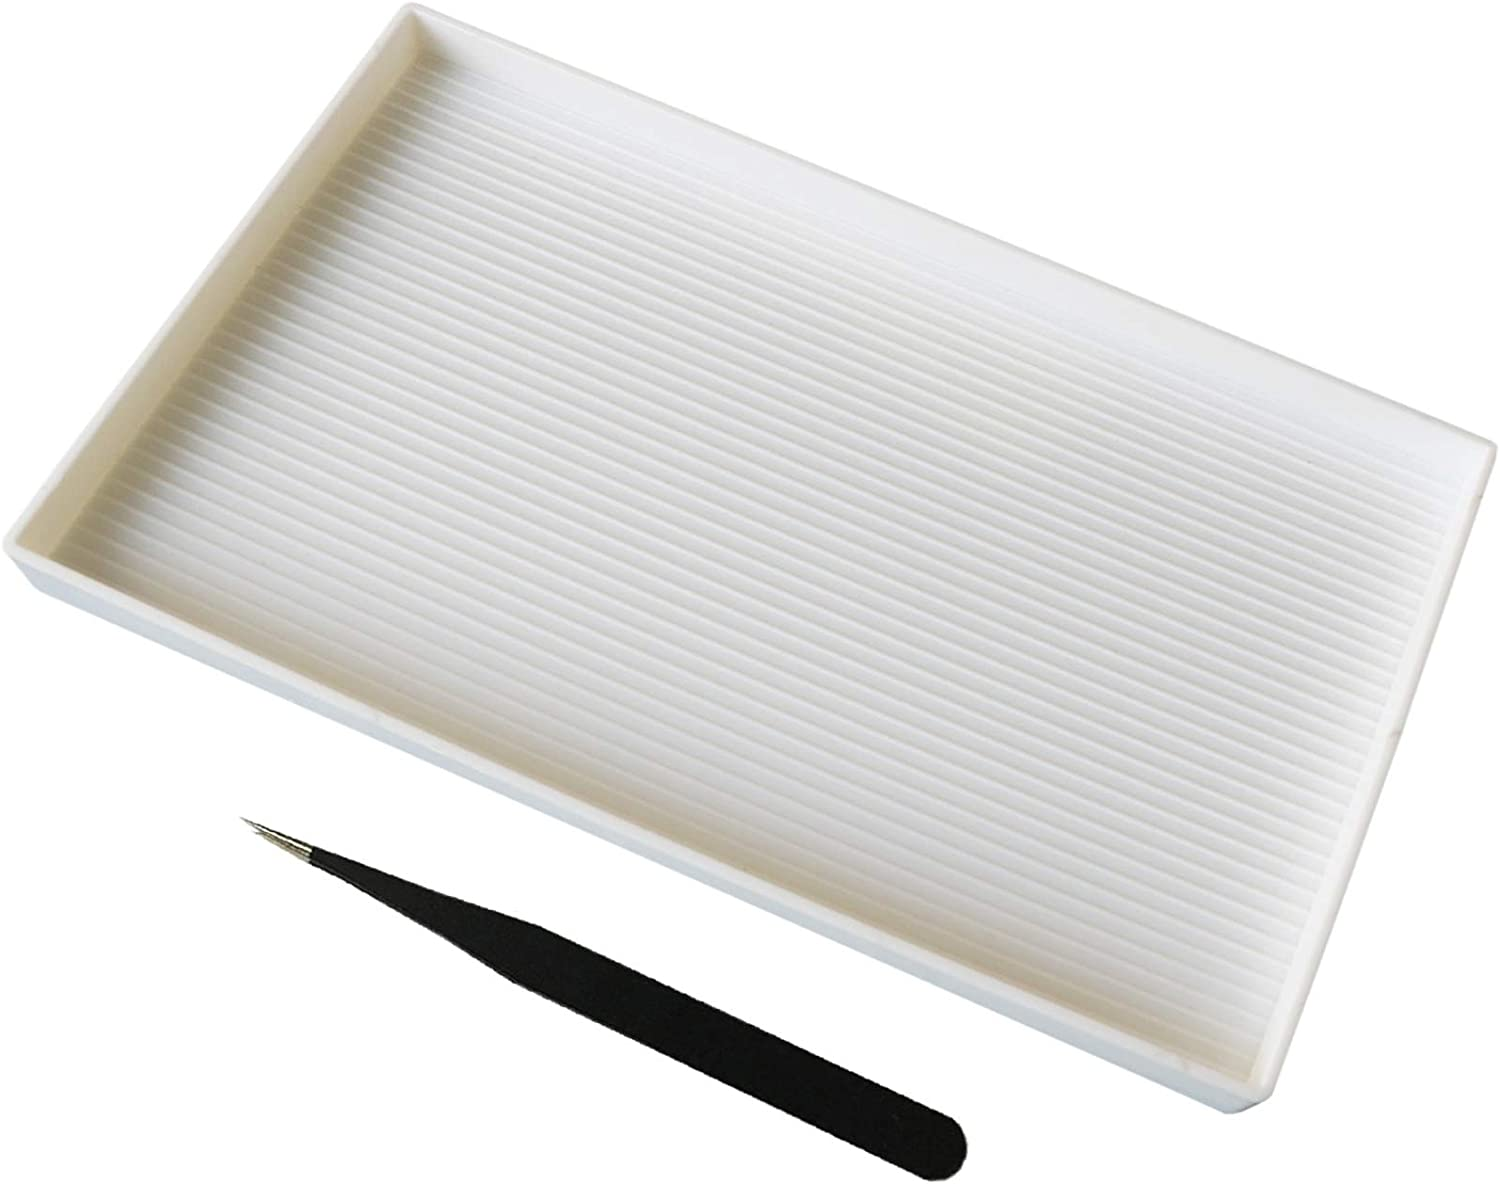 Extra Large Size Plastic Bead White Sorting Stainl Tray Max 89% Free Shipping Cheap Bargain Gift OFF 10x6inch